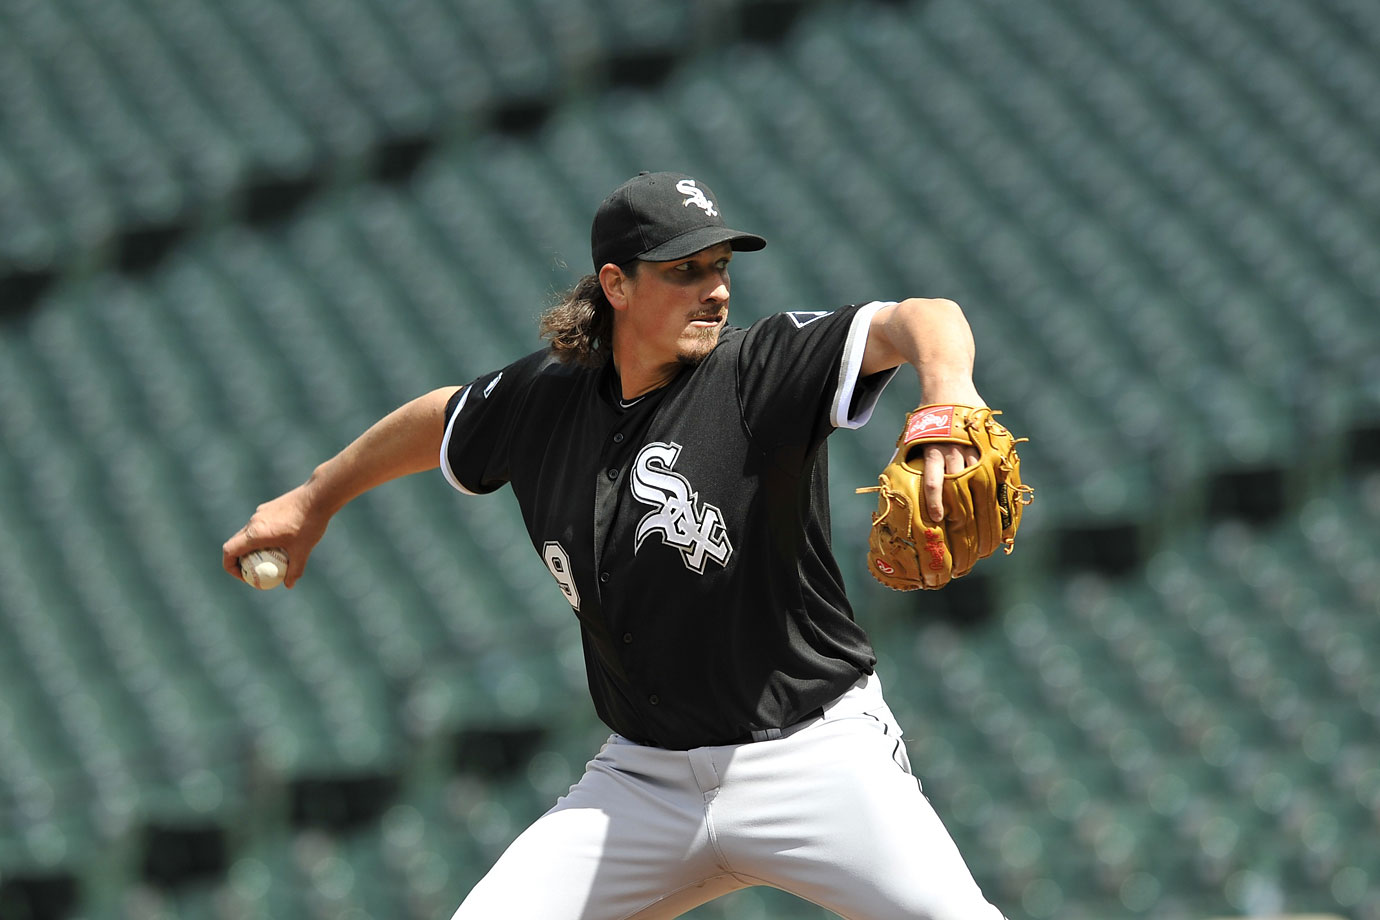 Used in a sentence: Samardzija started a game at an empty Camden Yards on April 29, 2015.